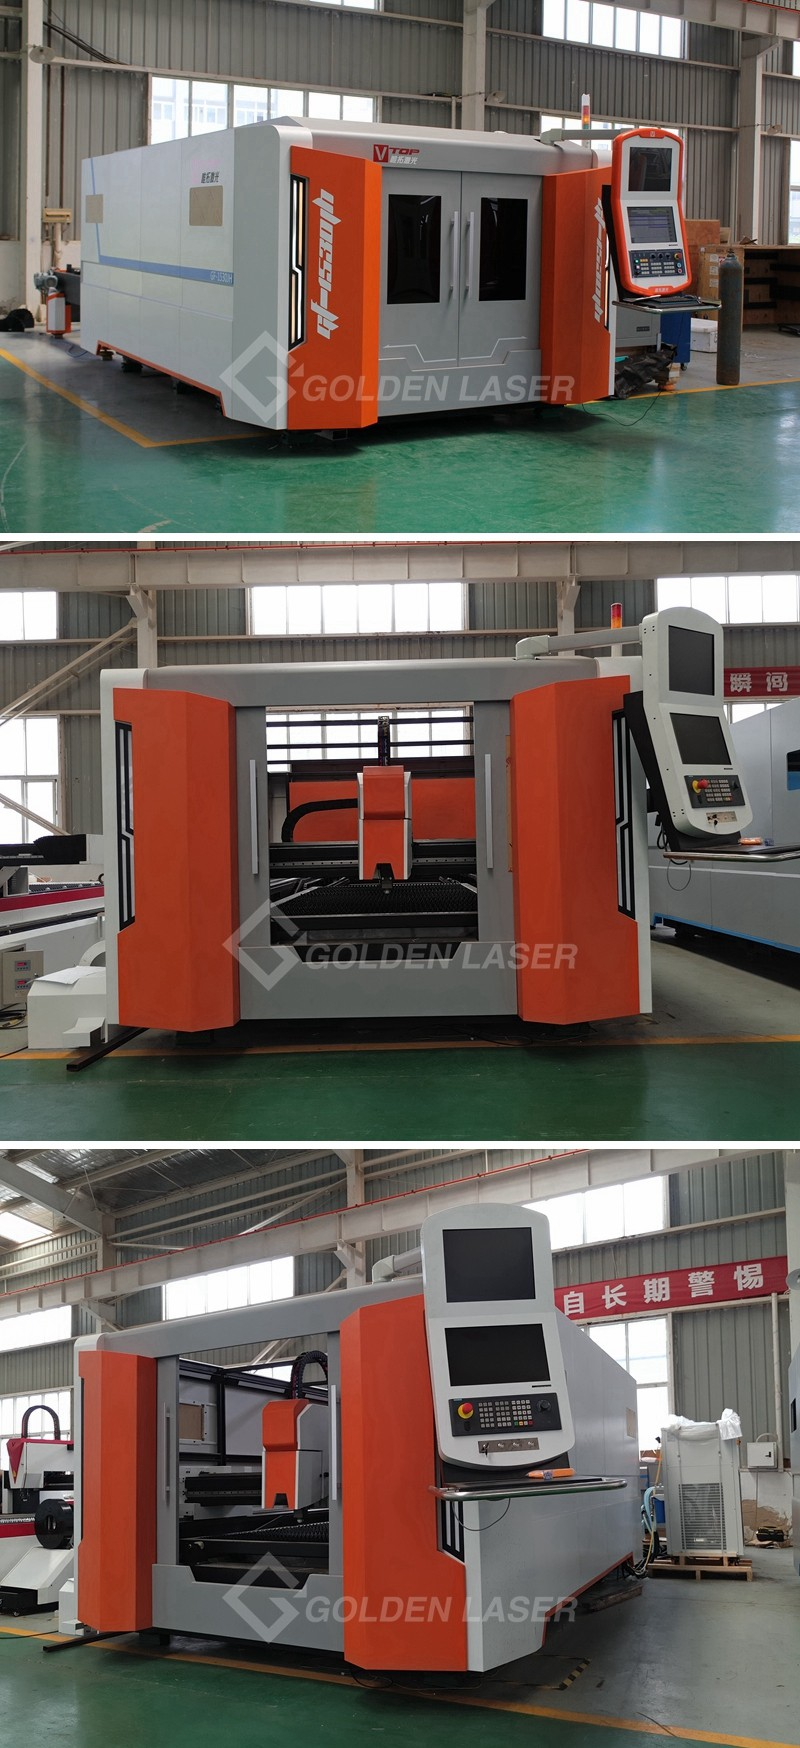 fiber laser cutting machines Golden Laser GF-1530JH